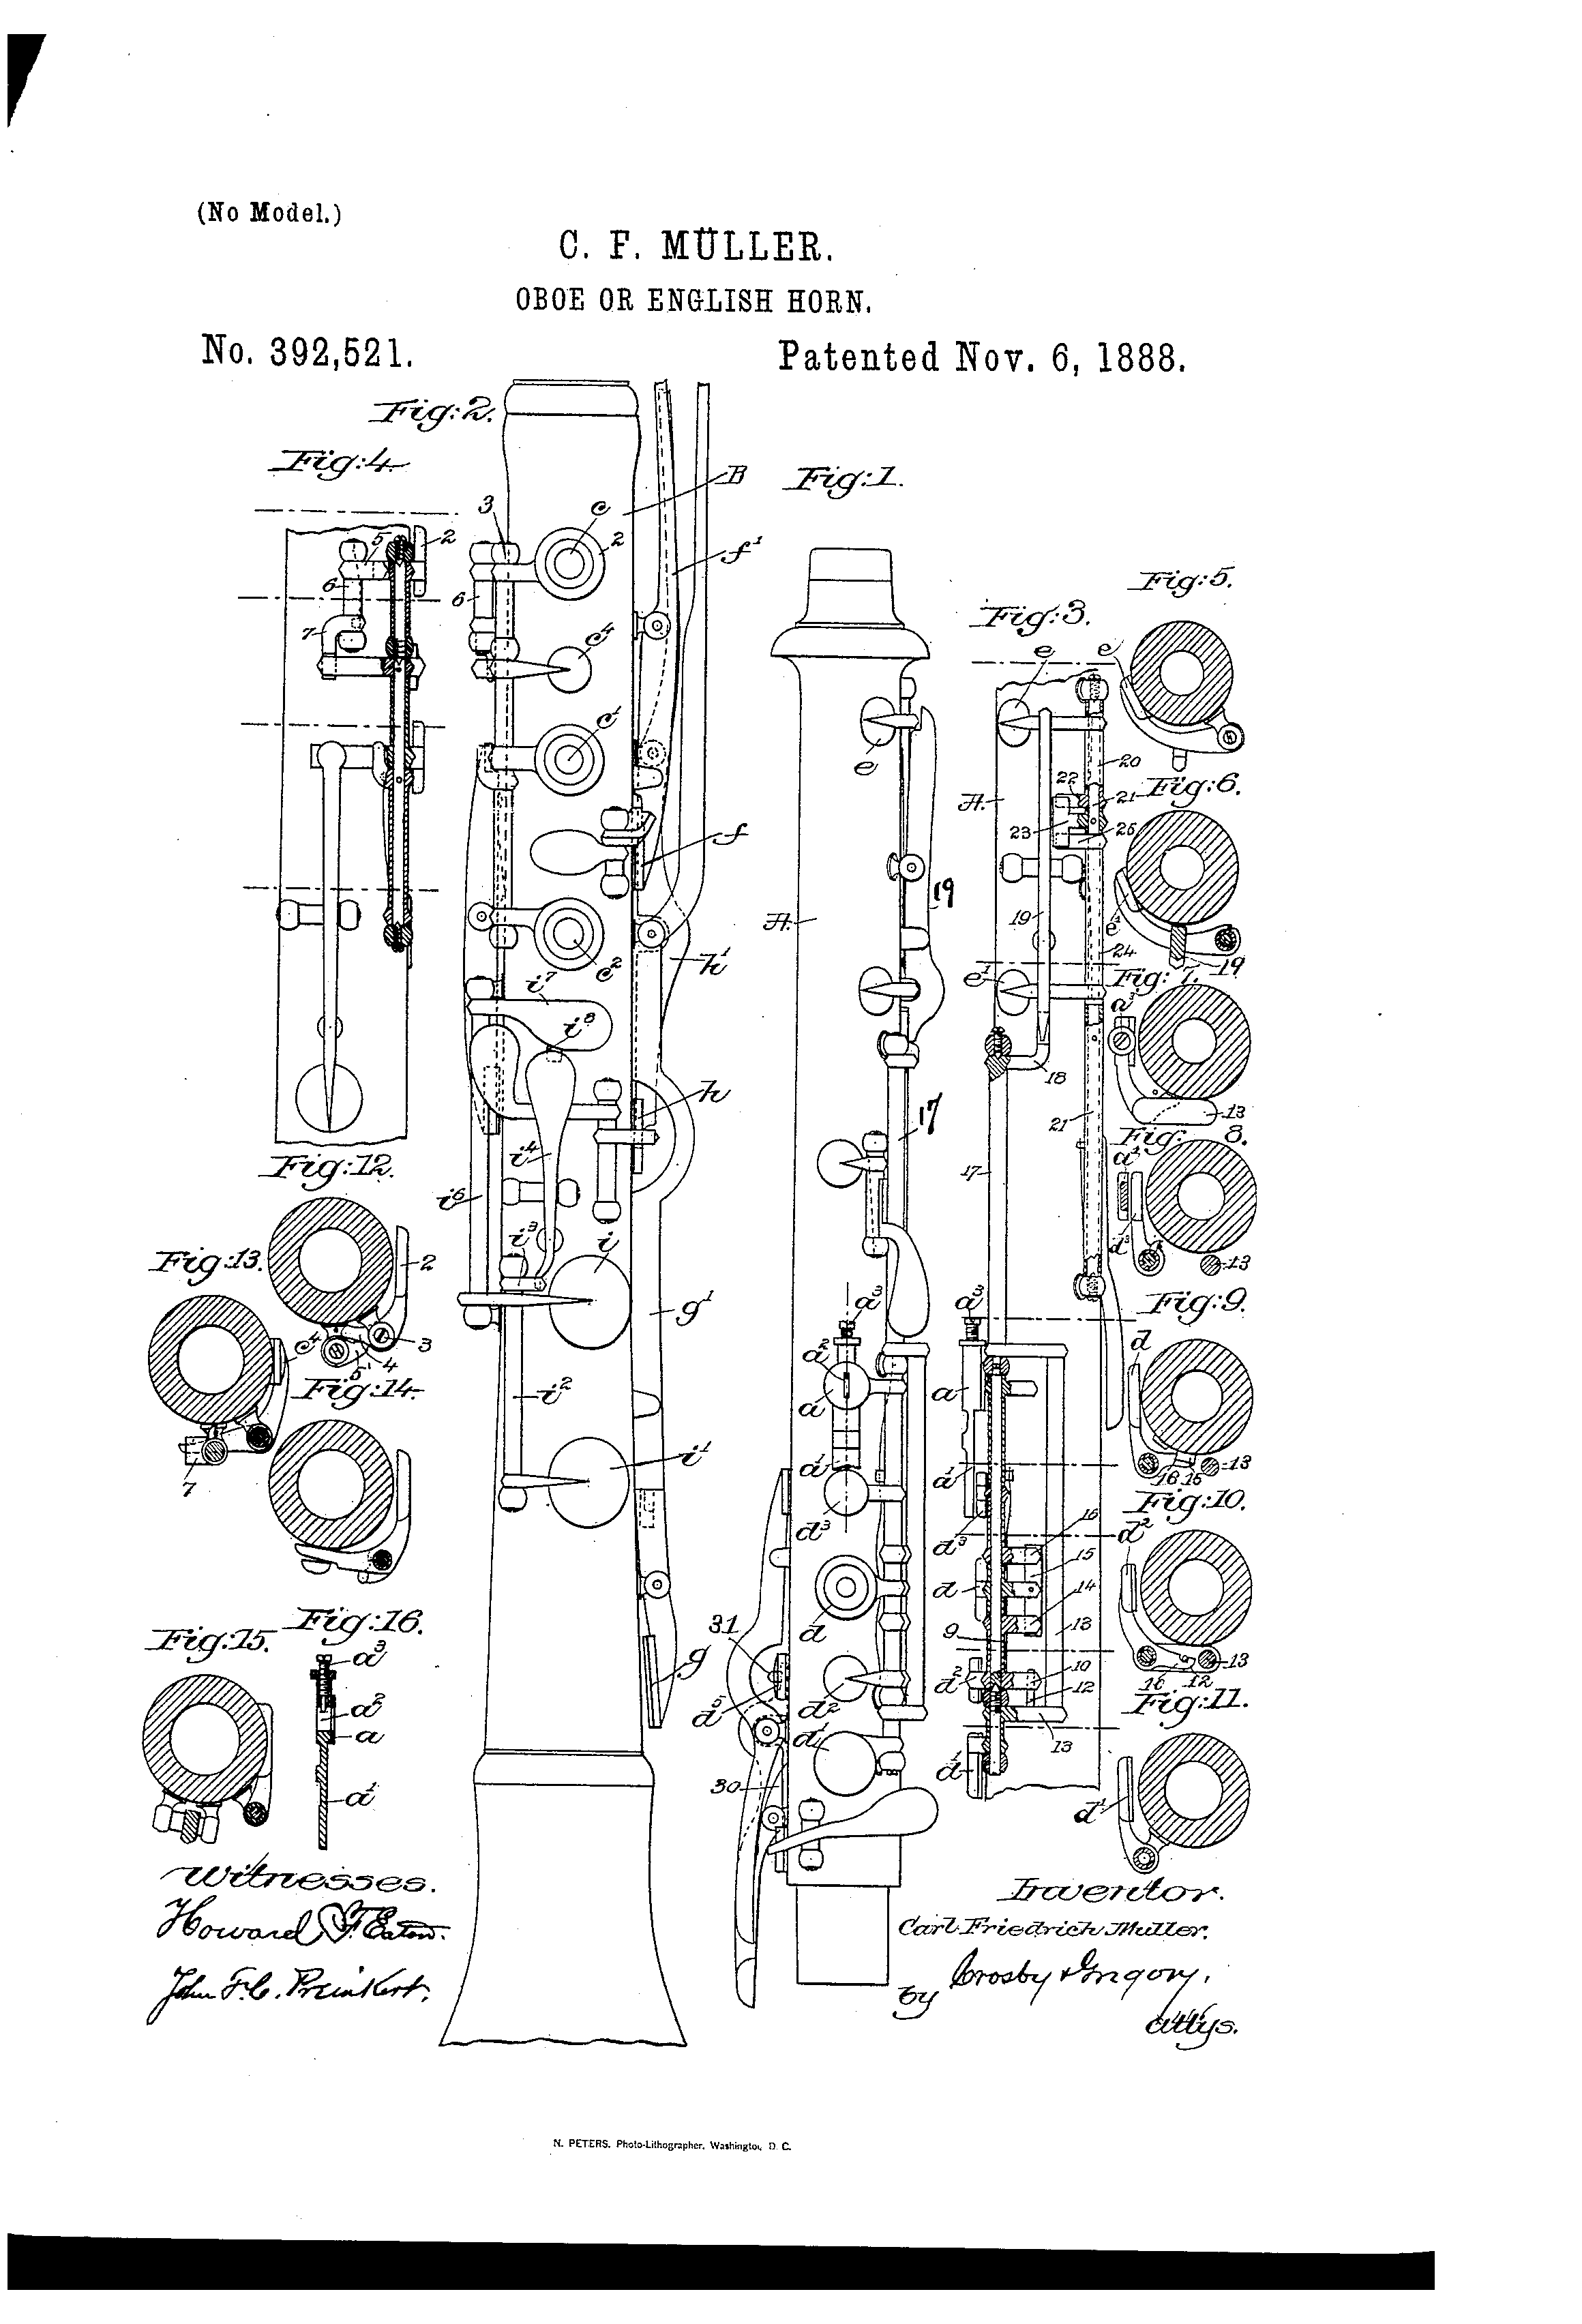 medium resolution of patent us392521 oboe or english horn google patents english horn oboe musical